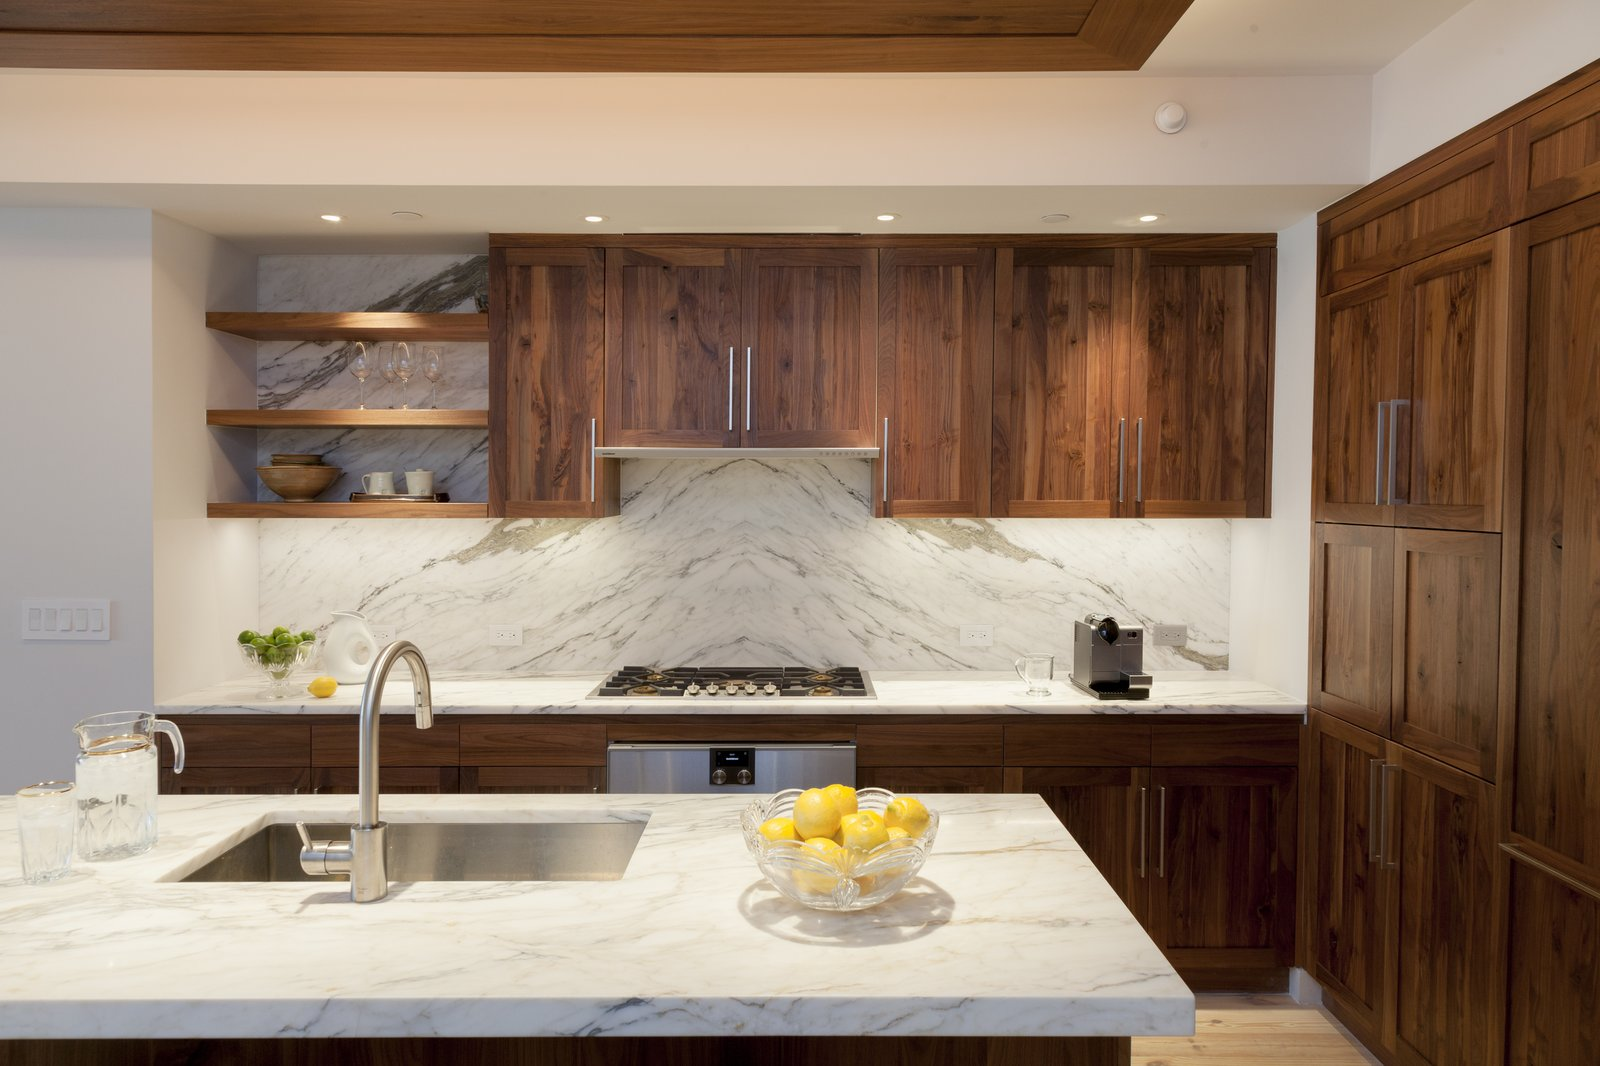 Kitchen, Marble, Wood, Stone Slab, Ceiling, Pendant, Light Hardwood, Accent, Recessed, Refrigerator, Wall Oven, Cooktops, Range, Range Hood, Wine Cooler, Ice Maker, Dishwasher, Microwave, and Undermount Walnut and book-matched  Calcutta kitchen  Kitchen Ice Maker Dishwasher Photos from Pierhouse At Brooklyn Bridge Park Condo